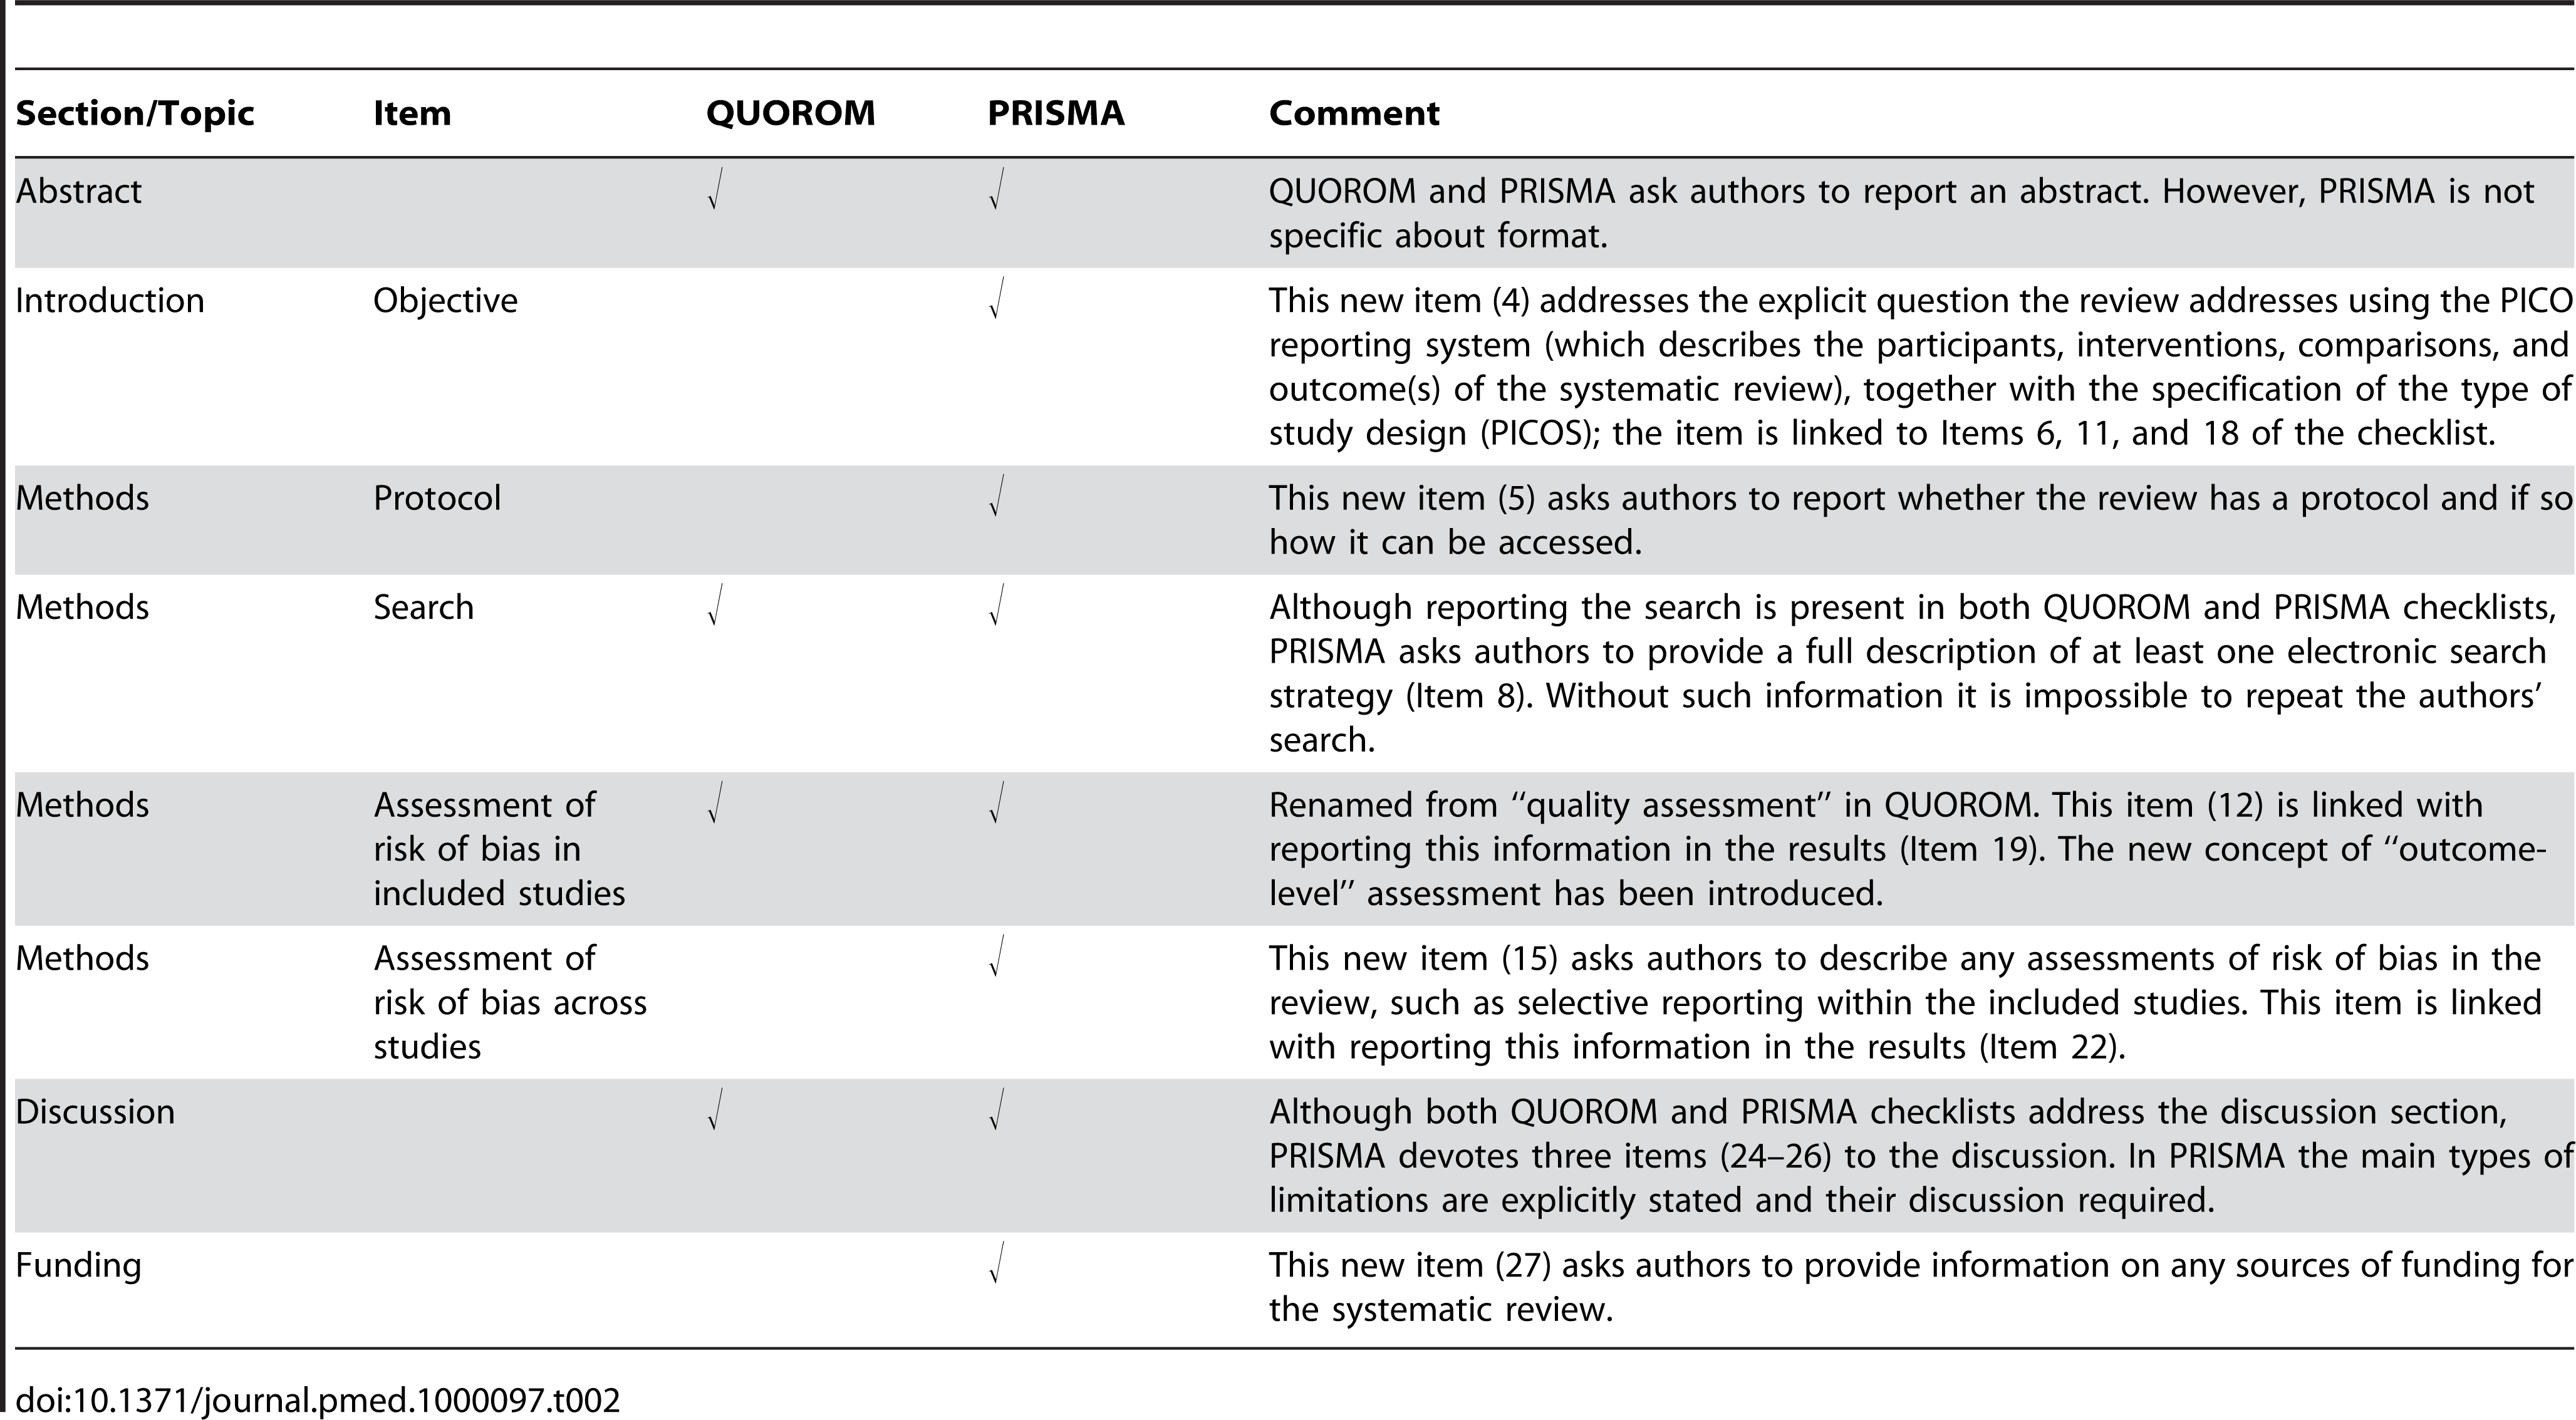 Substantive specific changes between the QUOROM checklist and the PRISMA checklist (a tick indicates the presence of the topic in QUOROM or PRISMA).